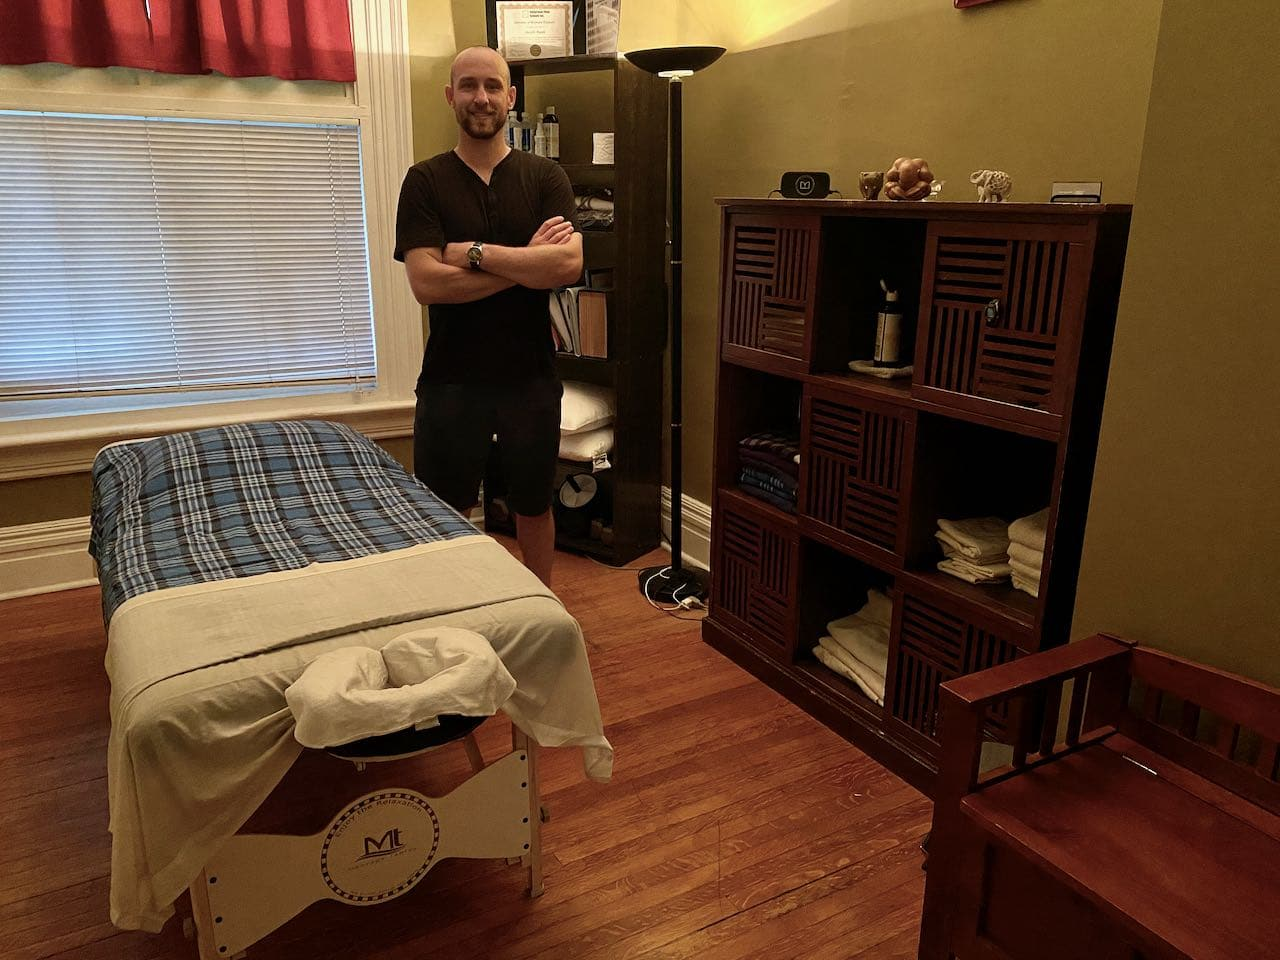 Joe Ryan offers registered massage therapy services at his home in Parkdale.